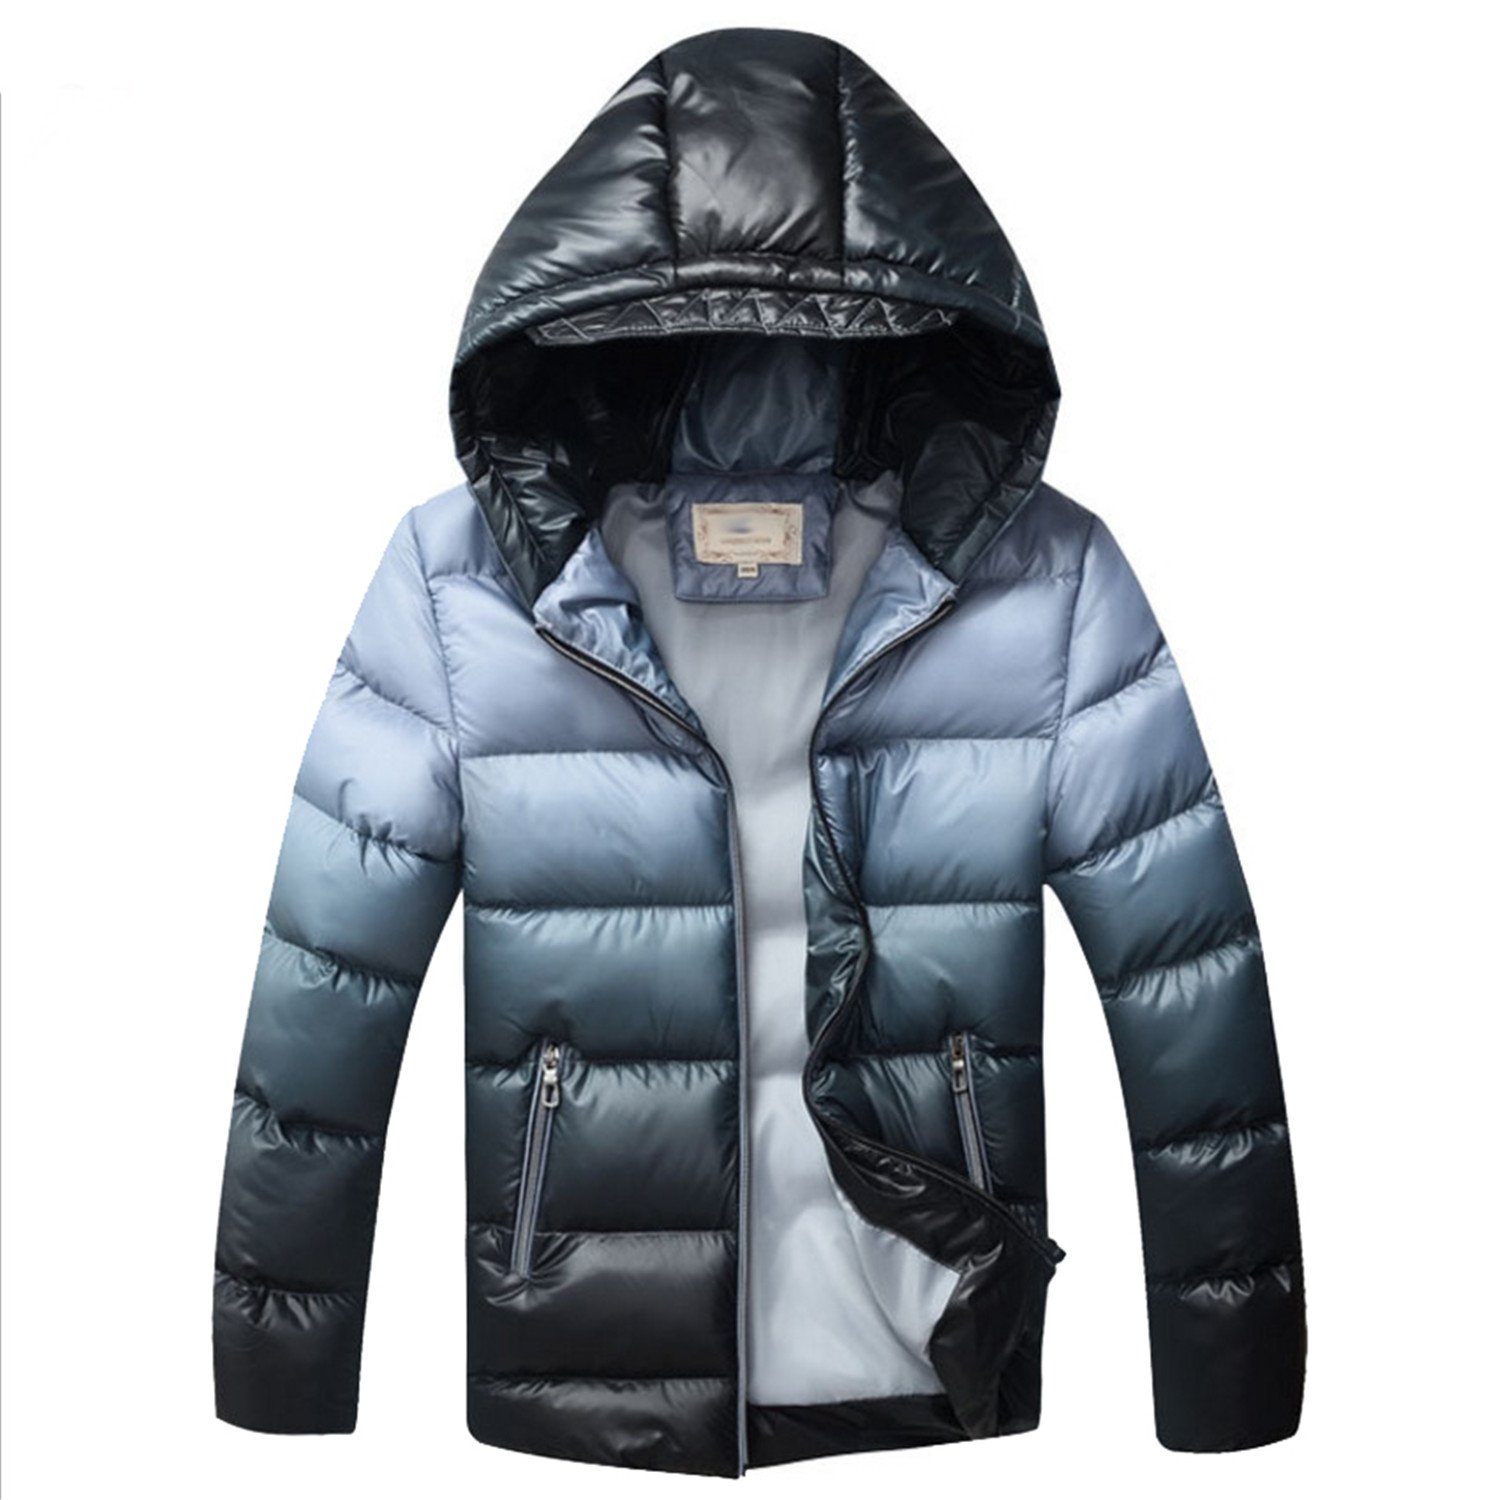 102292c17dfb Amazon.com  Sonms Boys Winter Coat Padded Jacket Outerwear For 8-17T ...